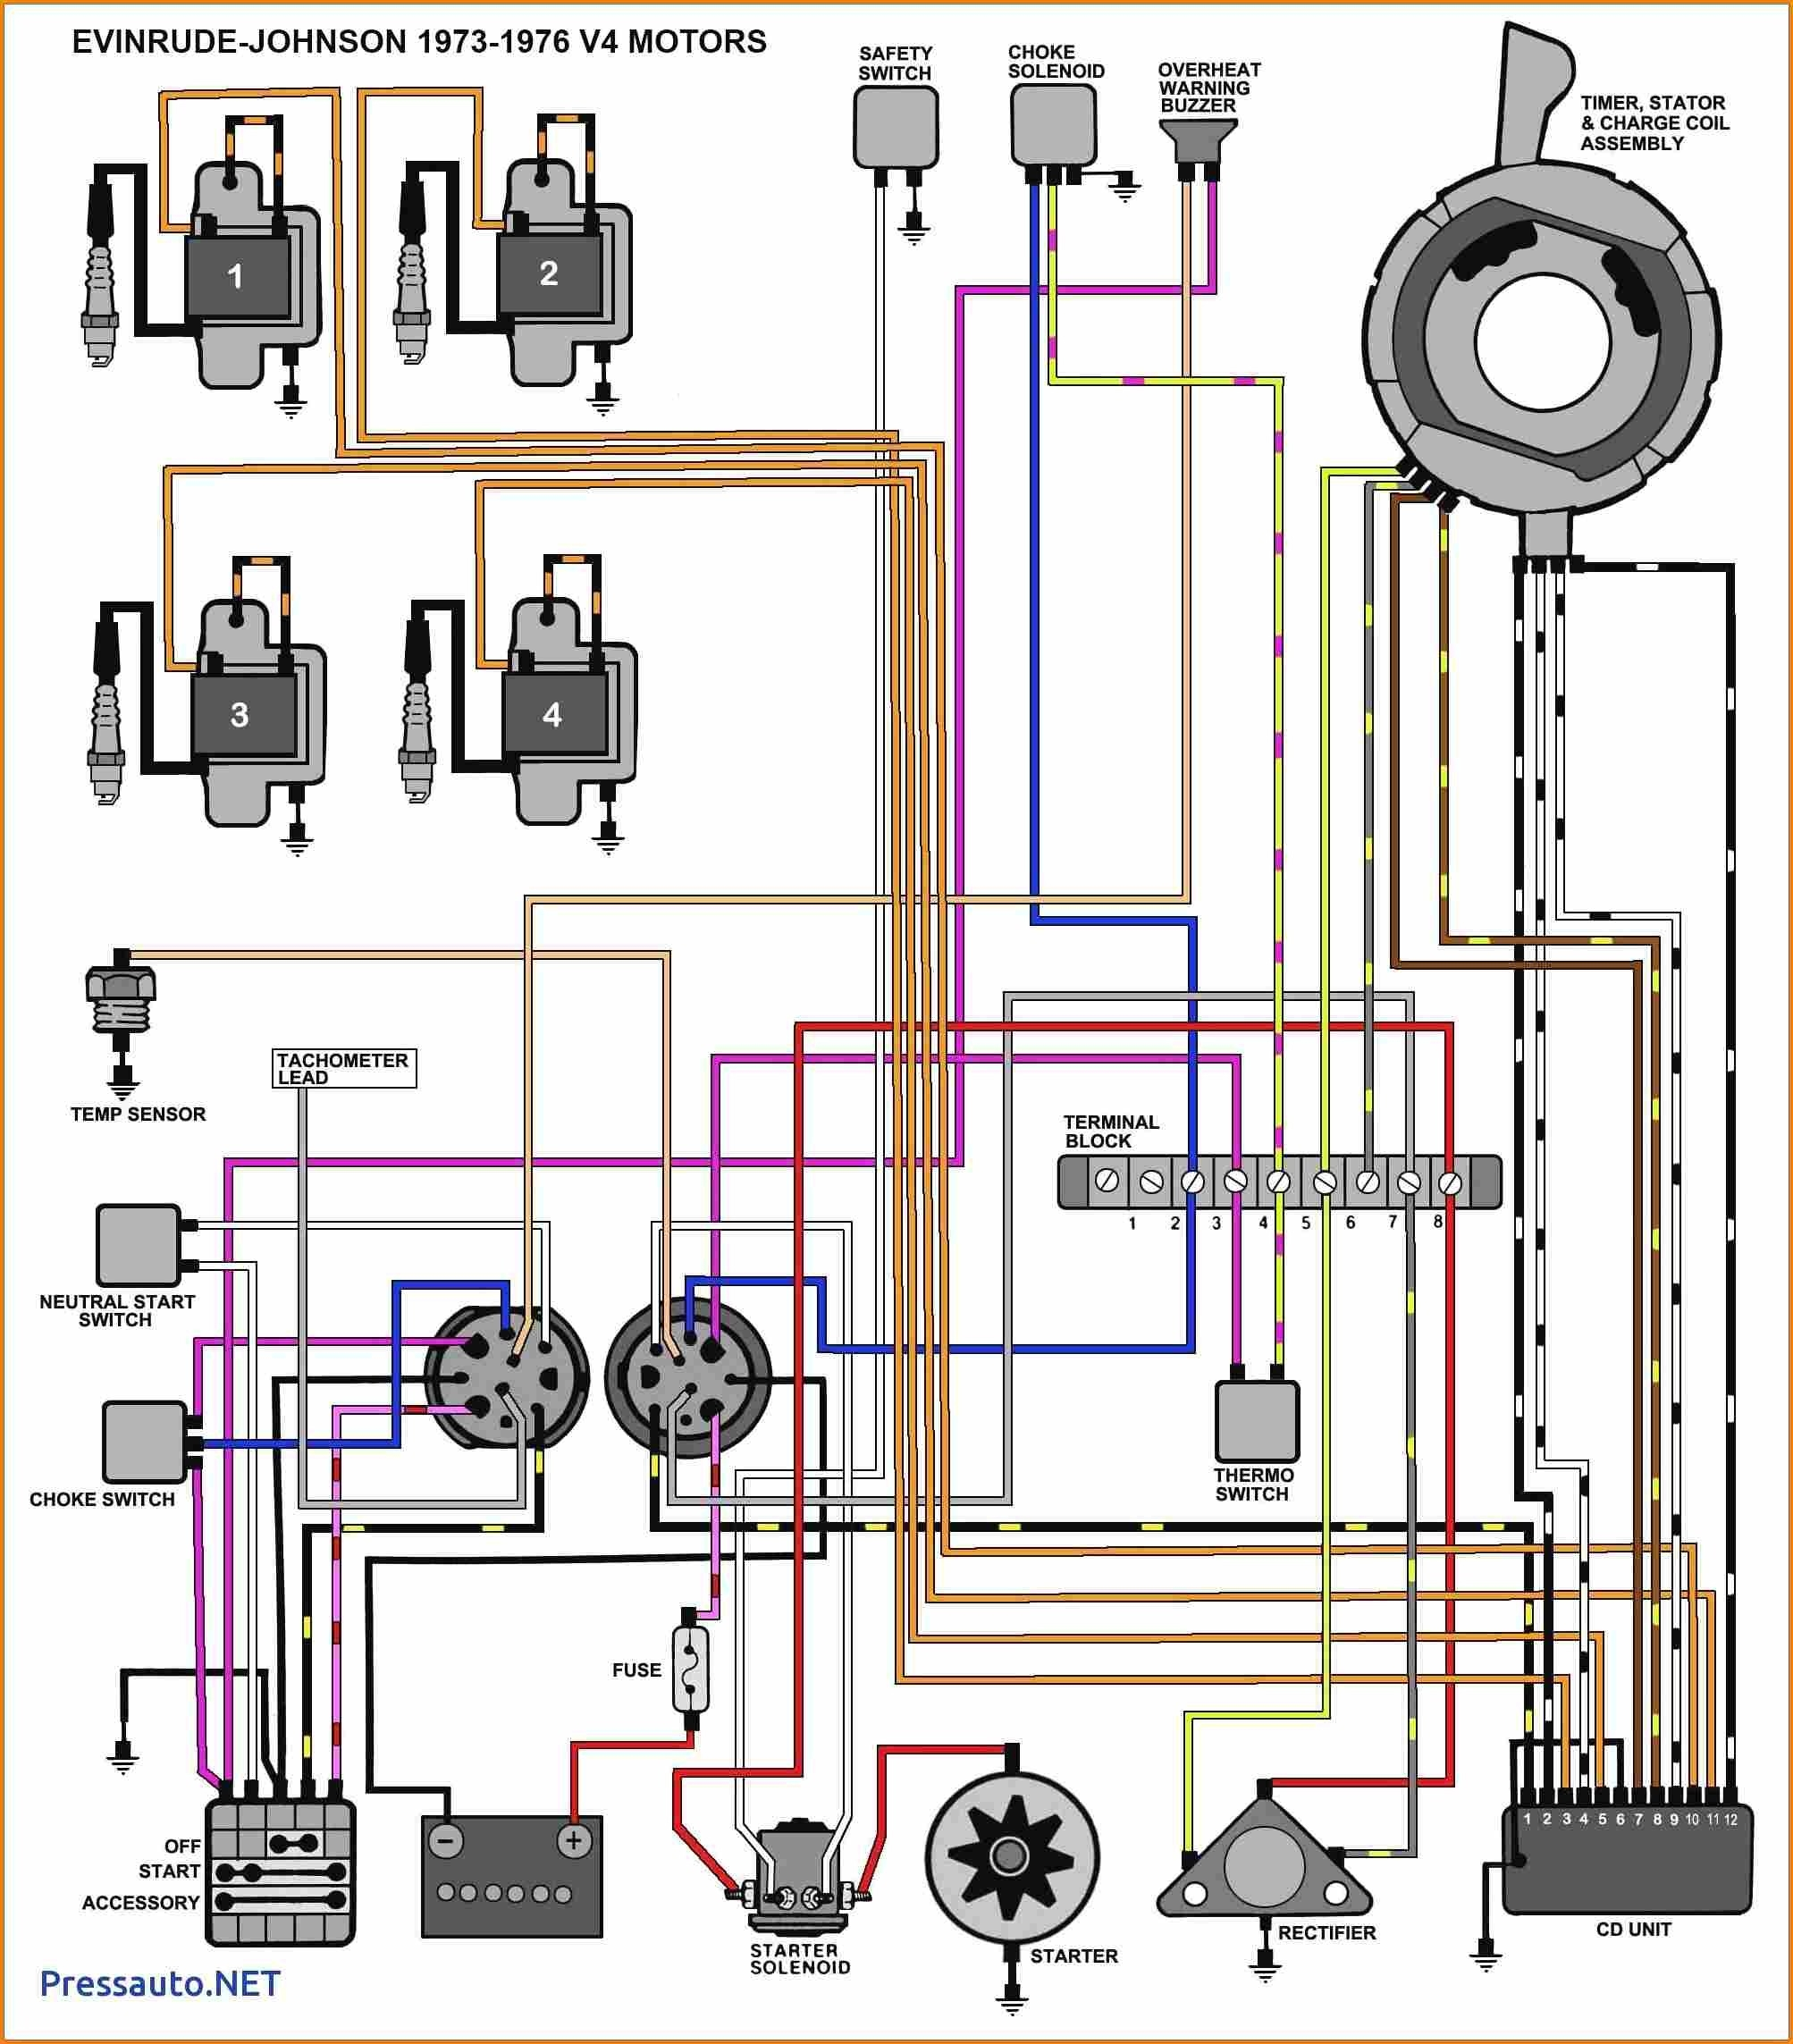 omc engine diagram wiring diagramomc cobra wiring diagram wiring diagramomc engine diagram wiring diagramomc engine diagram wiring diagrams